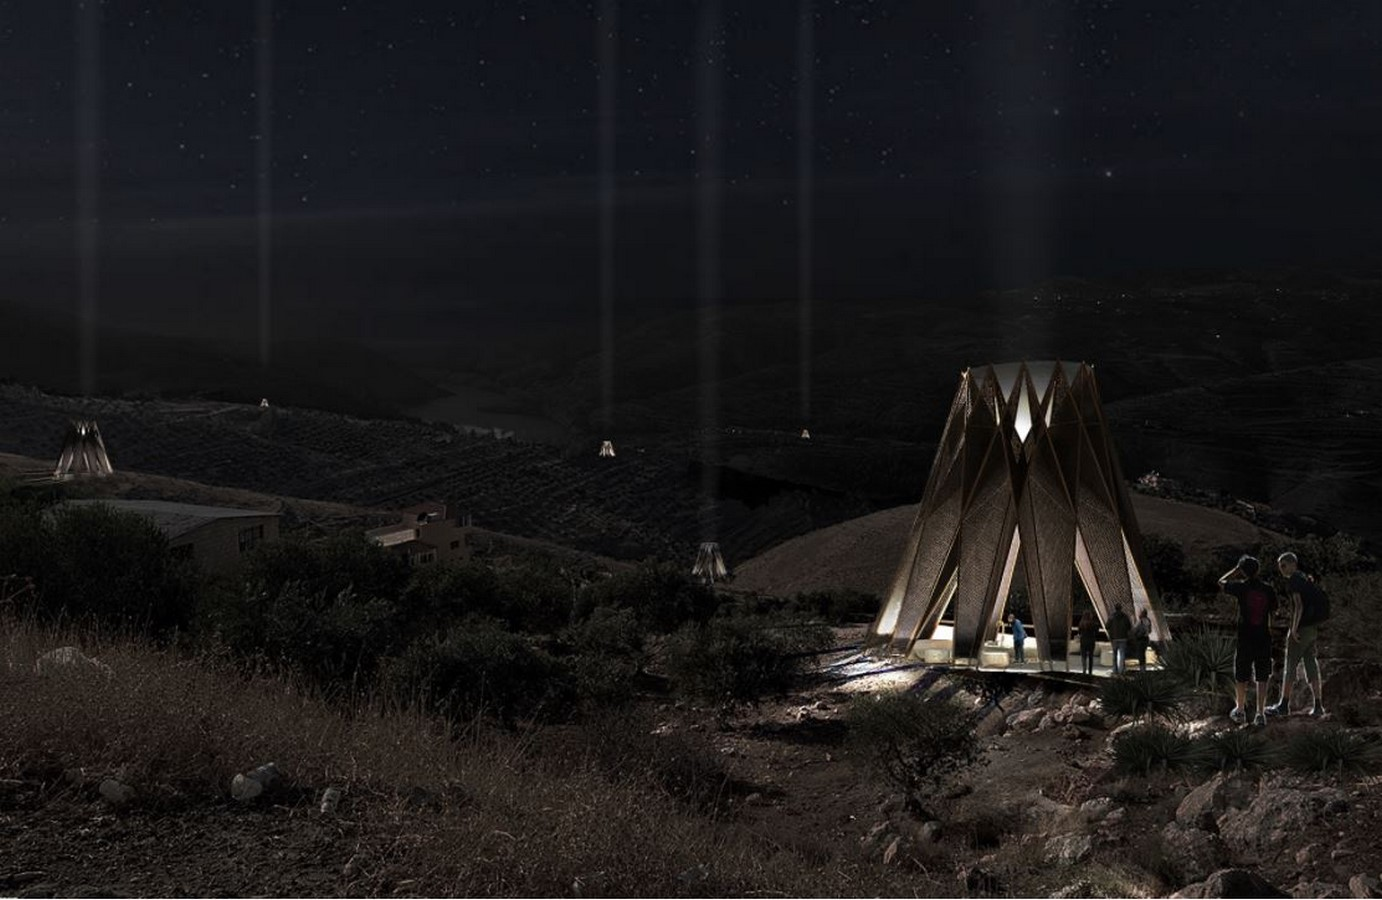 Nomad pavilion by Dina Haddadin and Rasem Kamal: Shelter and Water collection unit in Jordanian desert - Sheet1